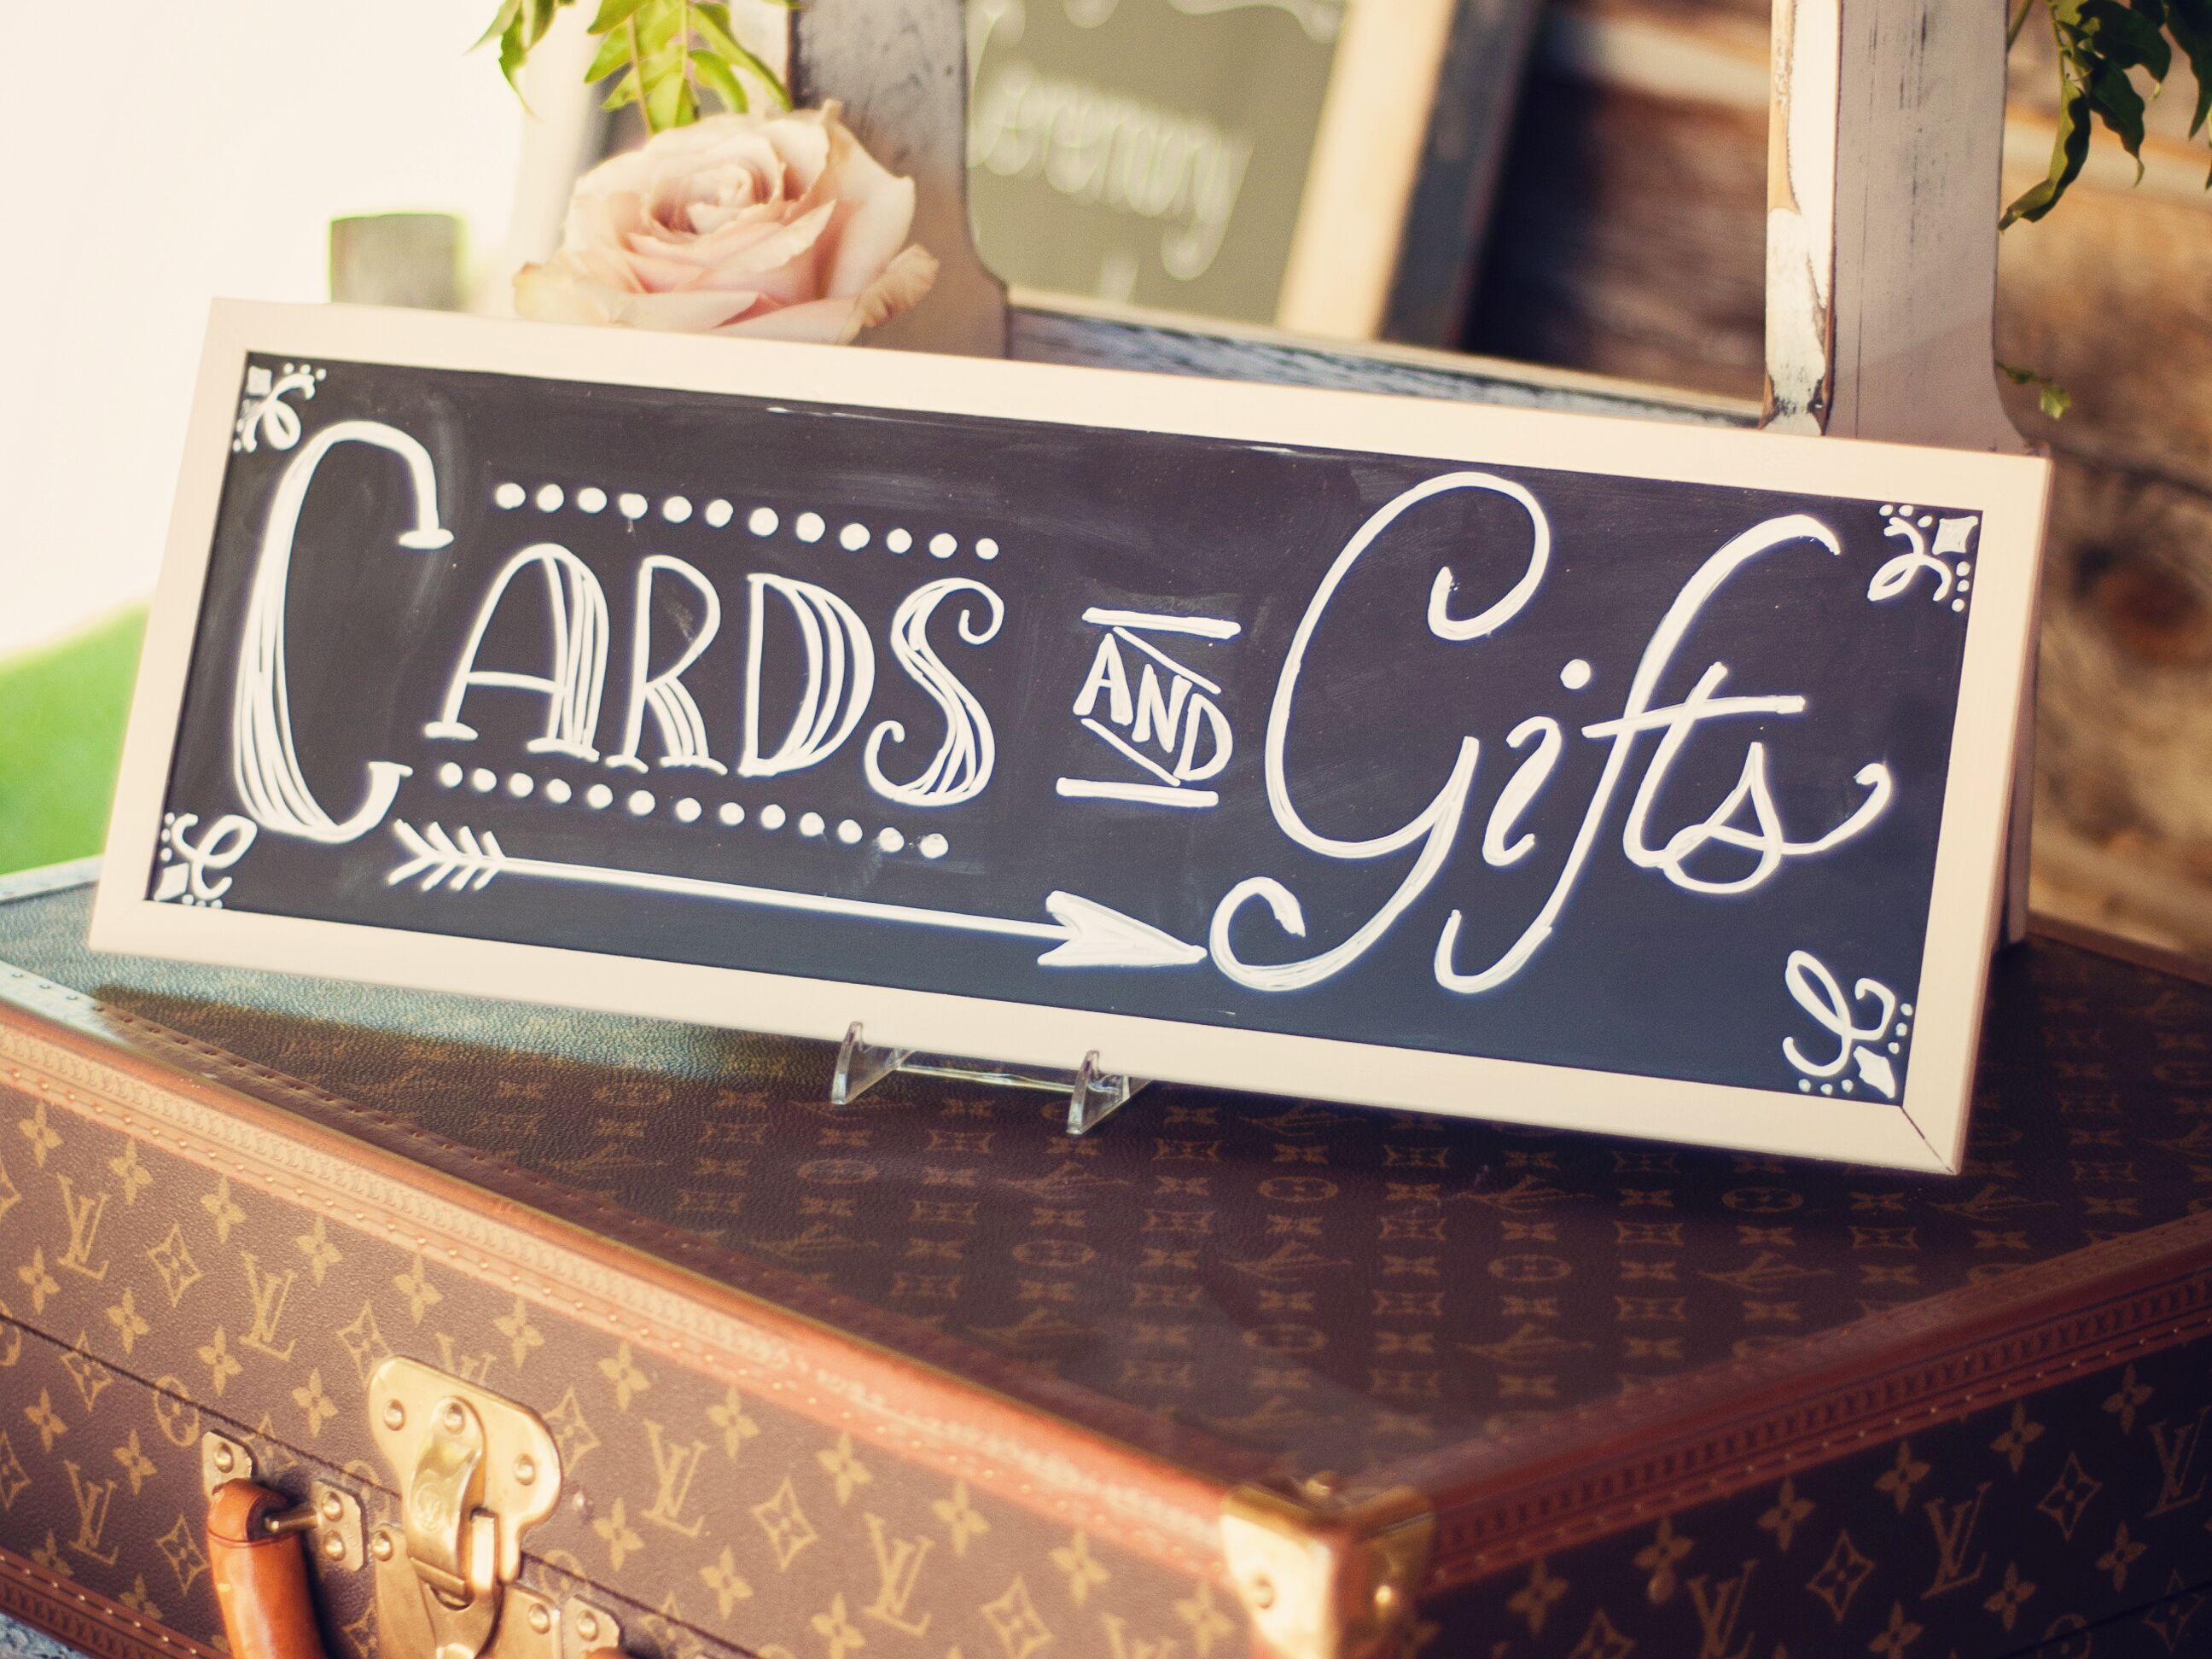 Wedding Gift Etiquette Evening Guests : Chalkboard cards and gifts sign at wedding reception